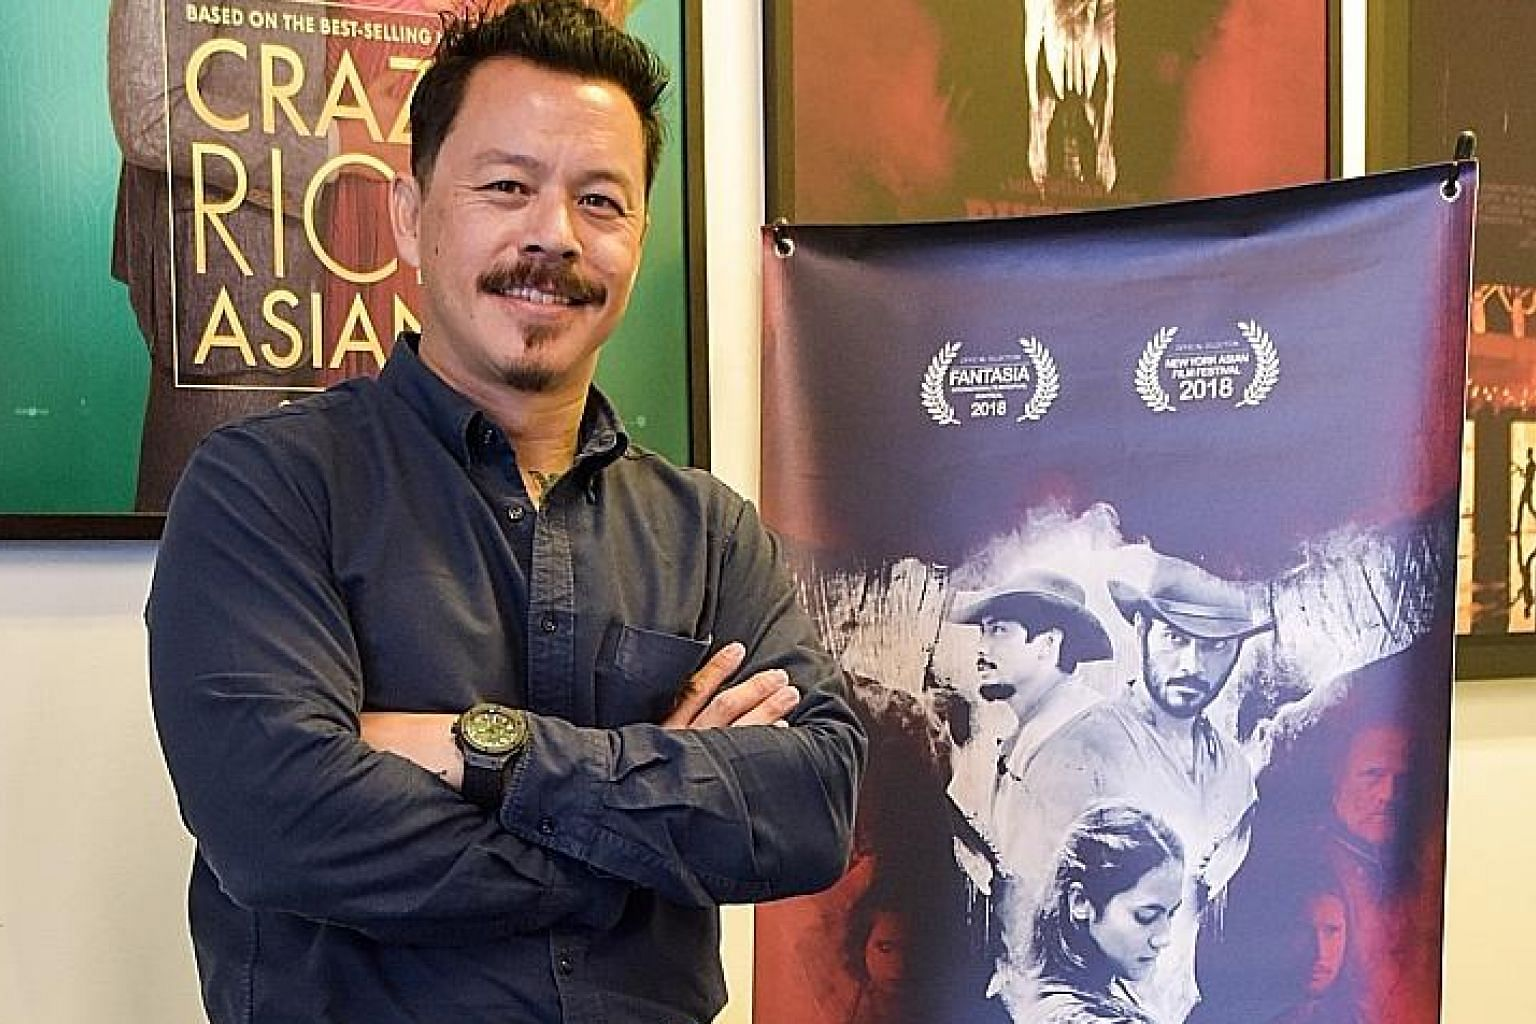 Buffalo Boys, a film set in 19th-century Java about two brothers seeking vengeance for their parents' death, is the directorial debut of Mike Wiluan (left), chief executive of media company Infinite Studios.